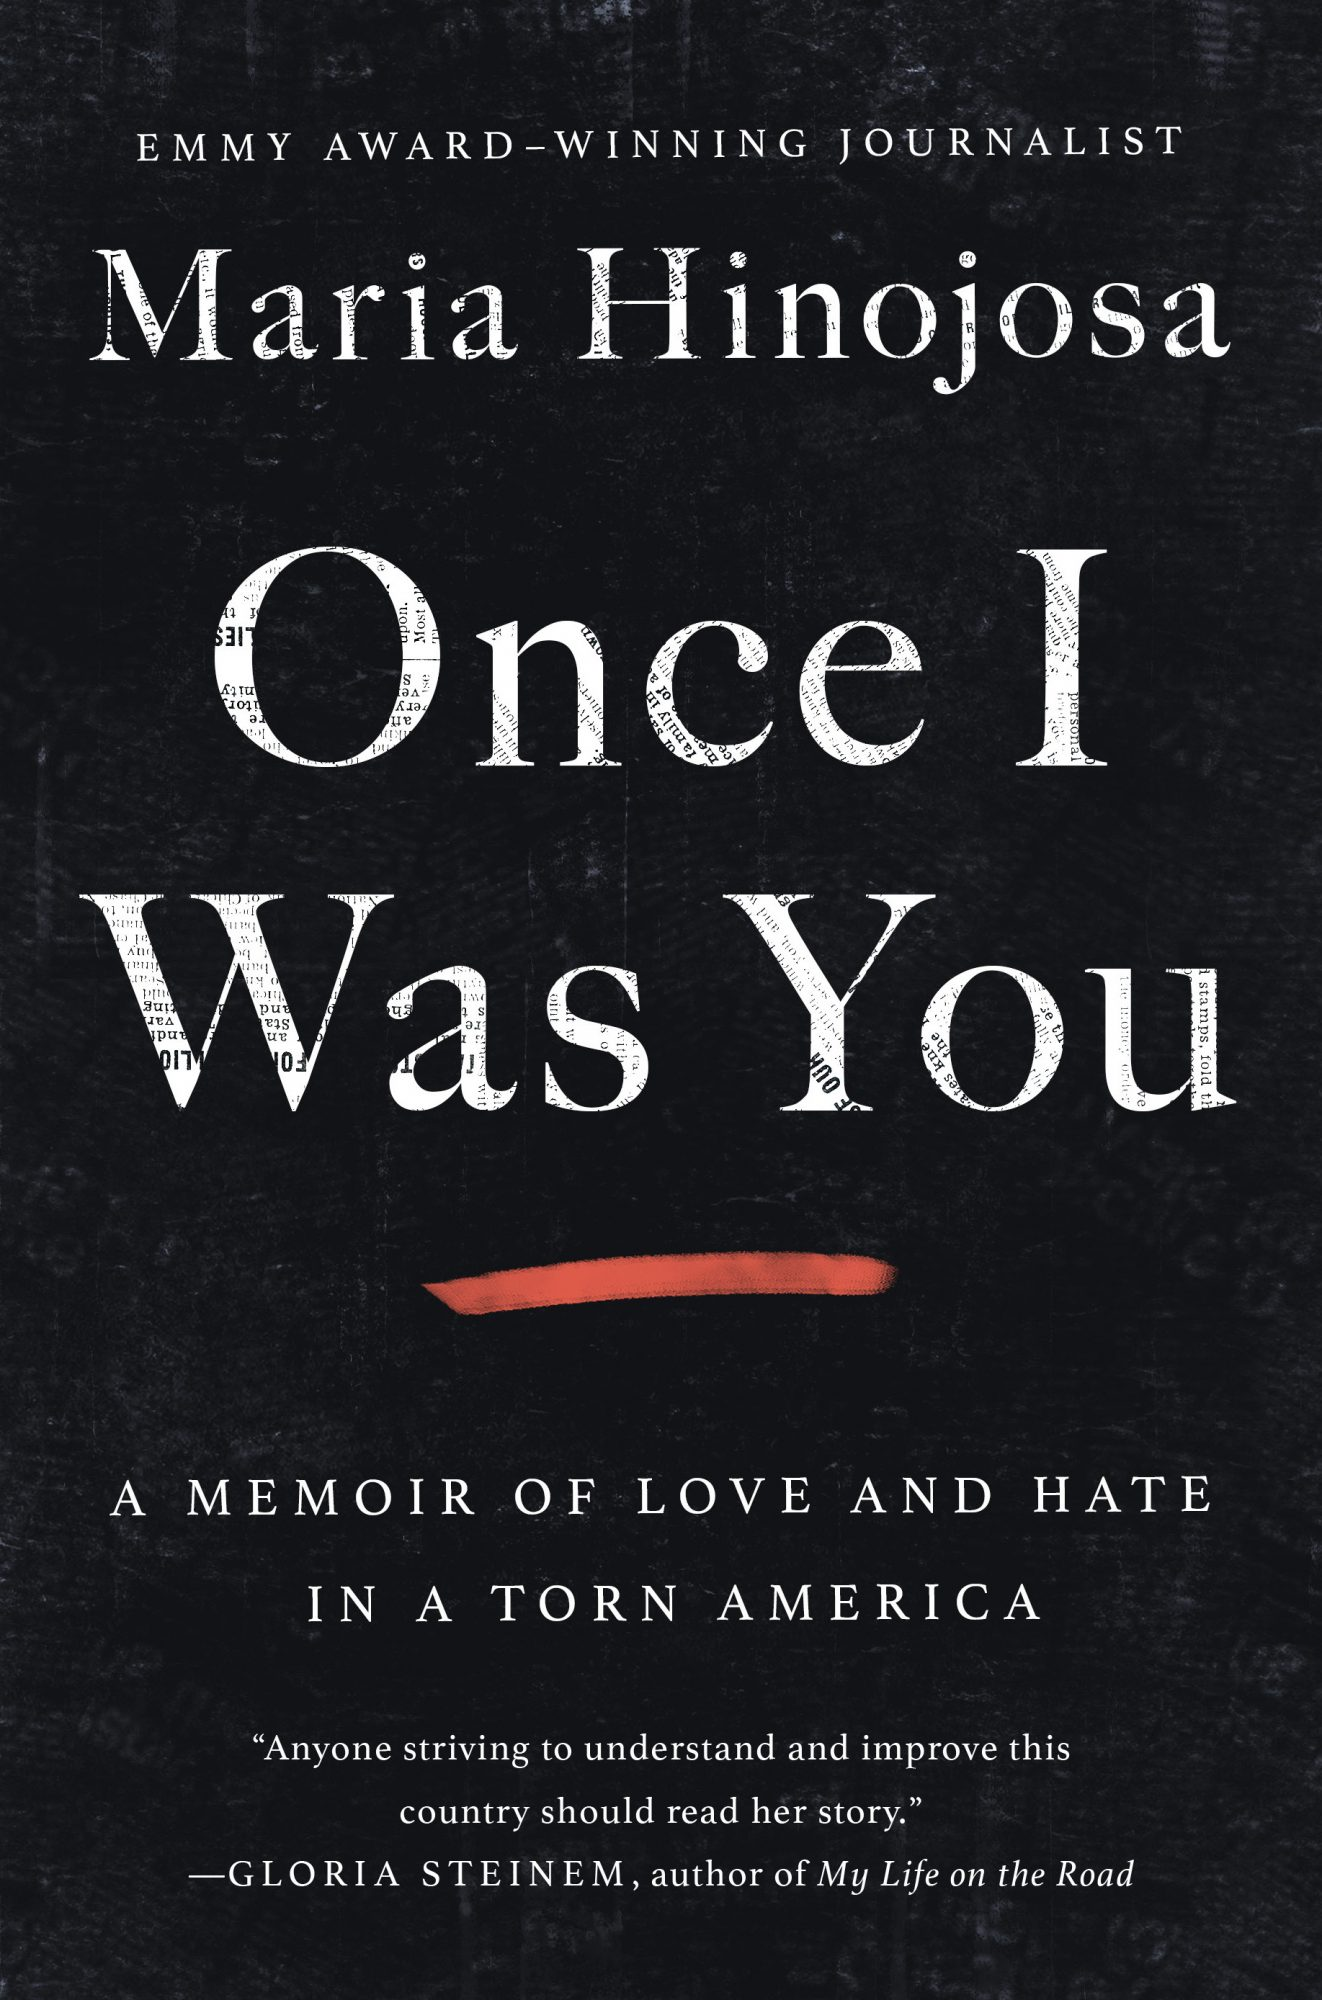 Maria Hinojosa - Once I was you